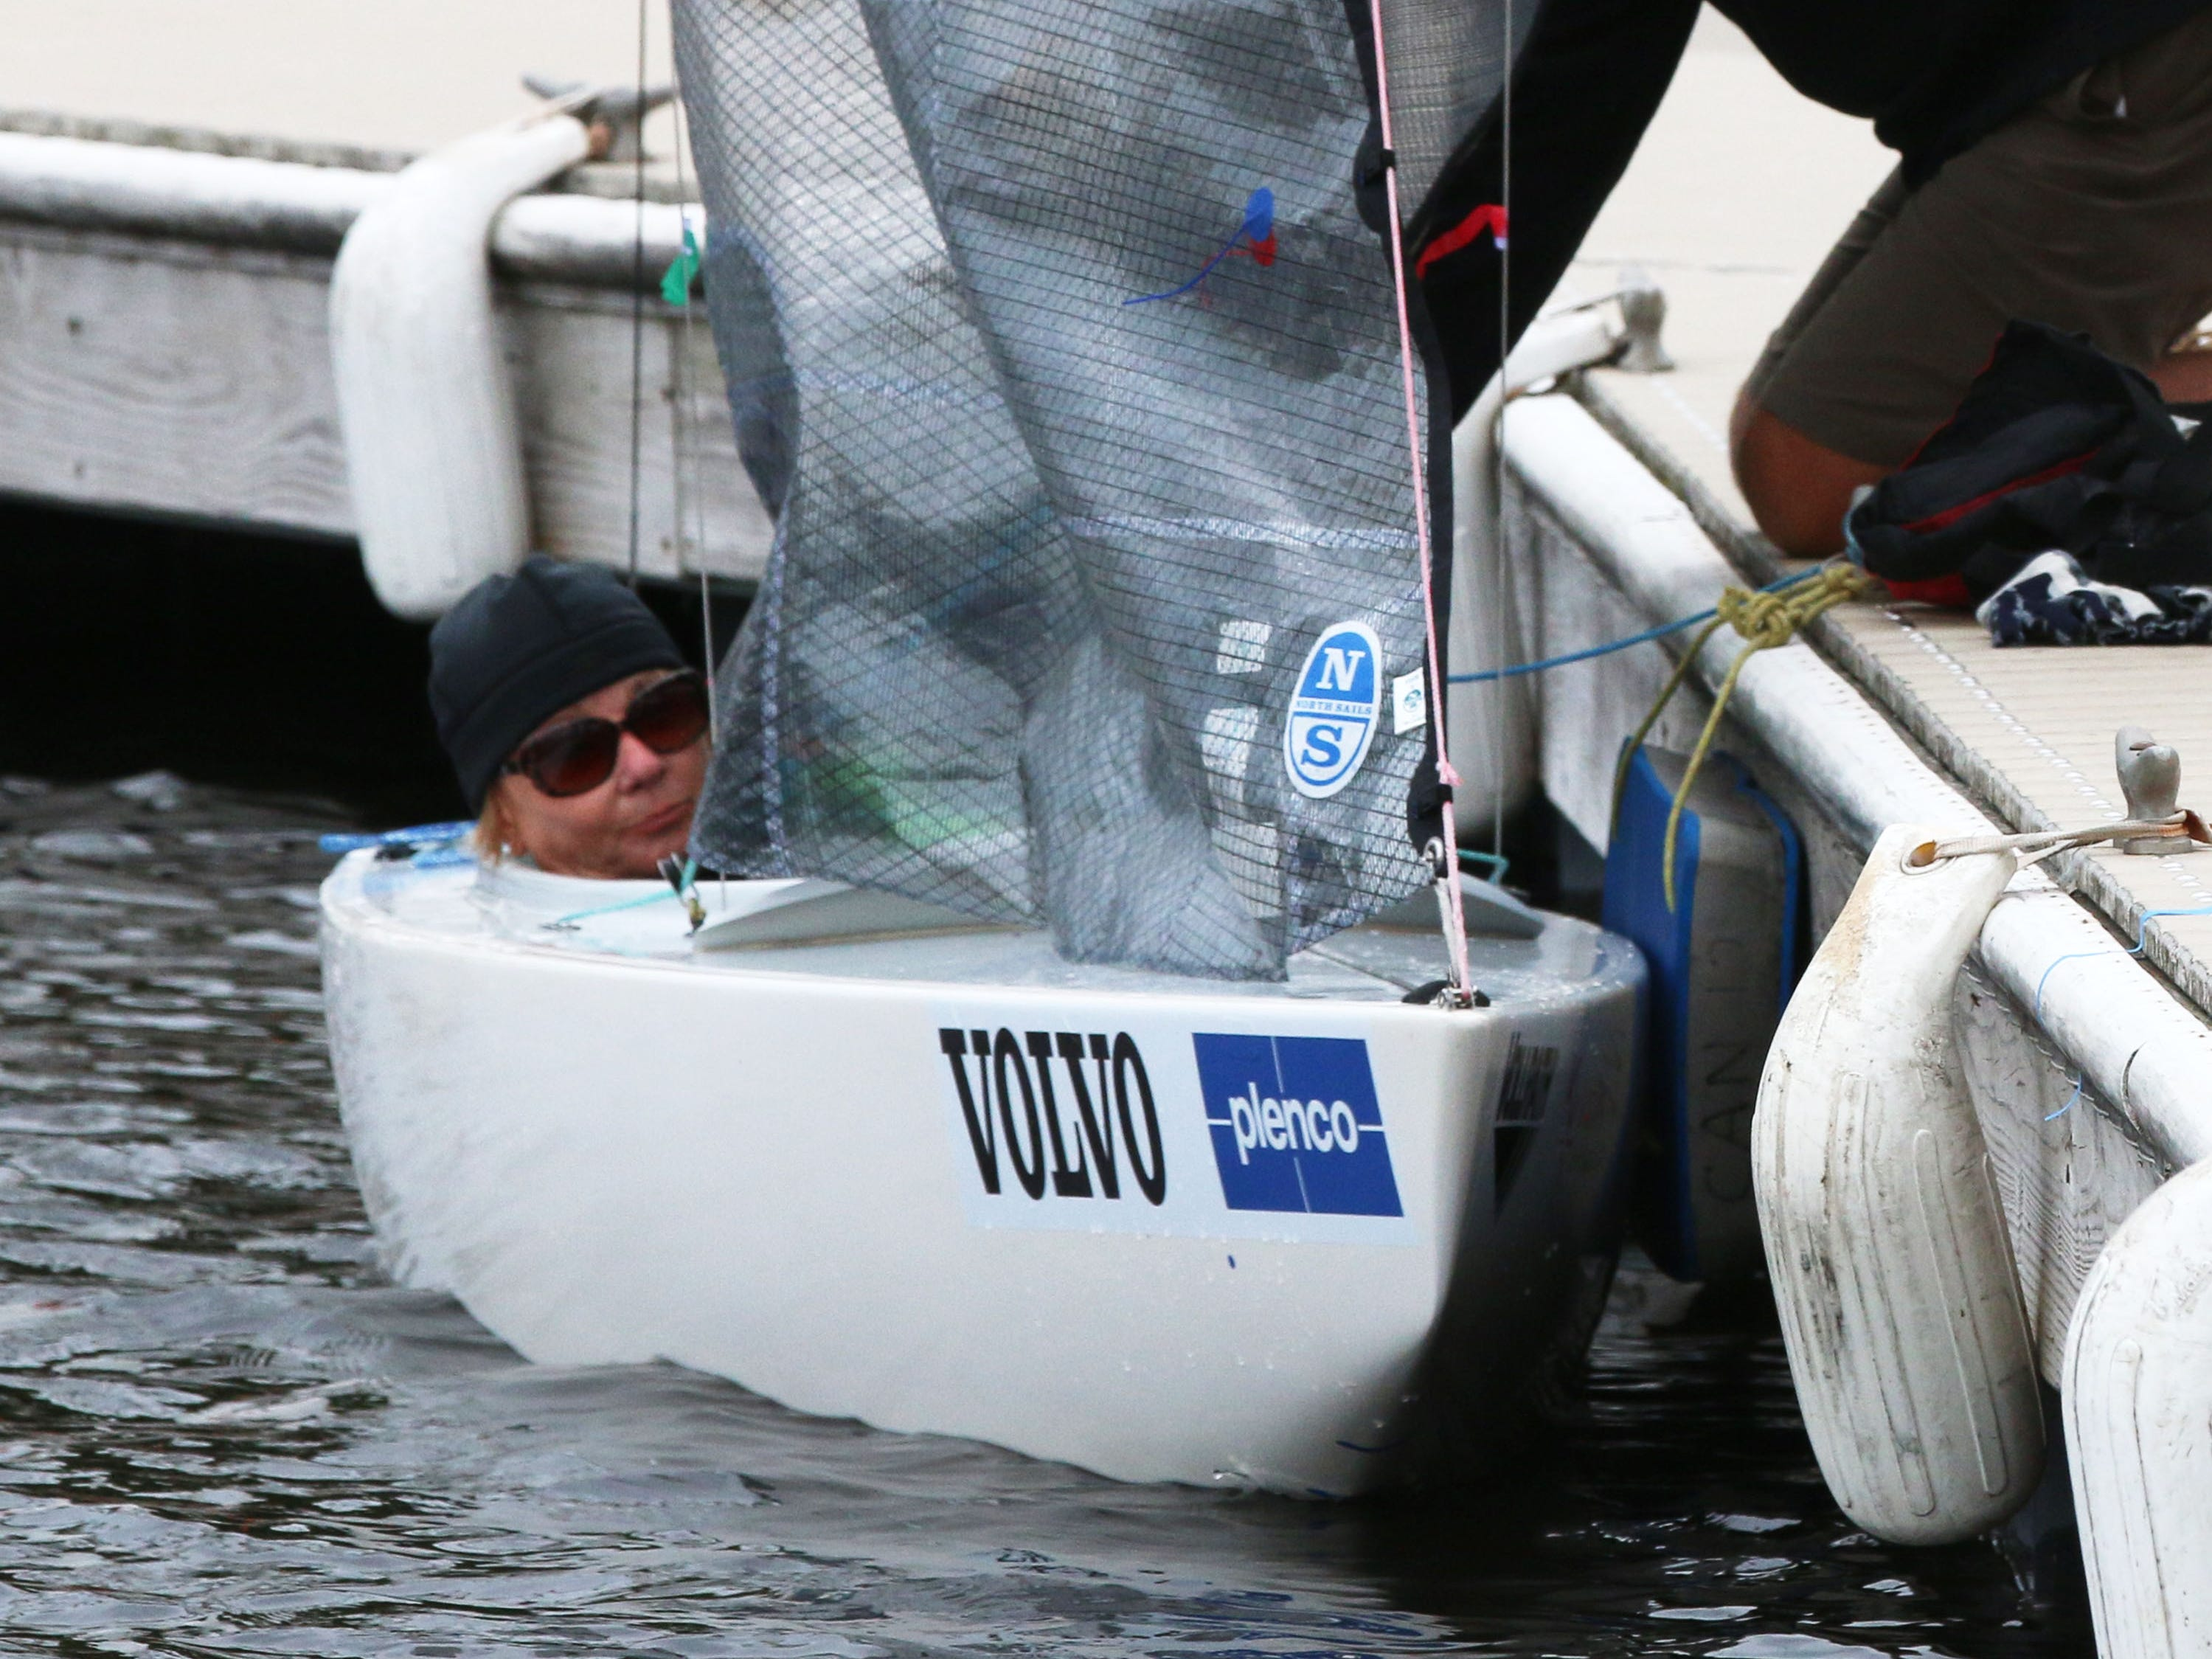 Christine Laballee of Gatineau, Quebec, Canada, waits while being secured in her sail boat at the Para World Sailing Championships, Tuesday, September 18, 2018, in Sheboygan, Wis.